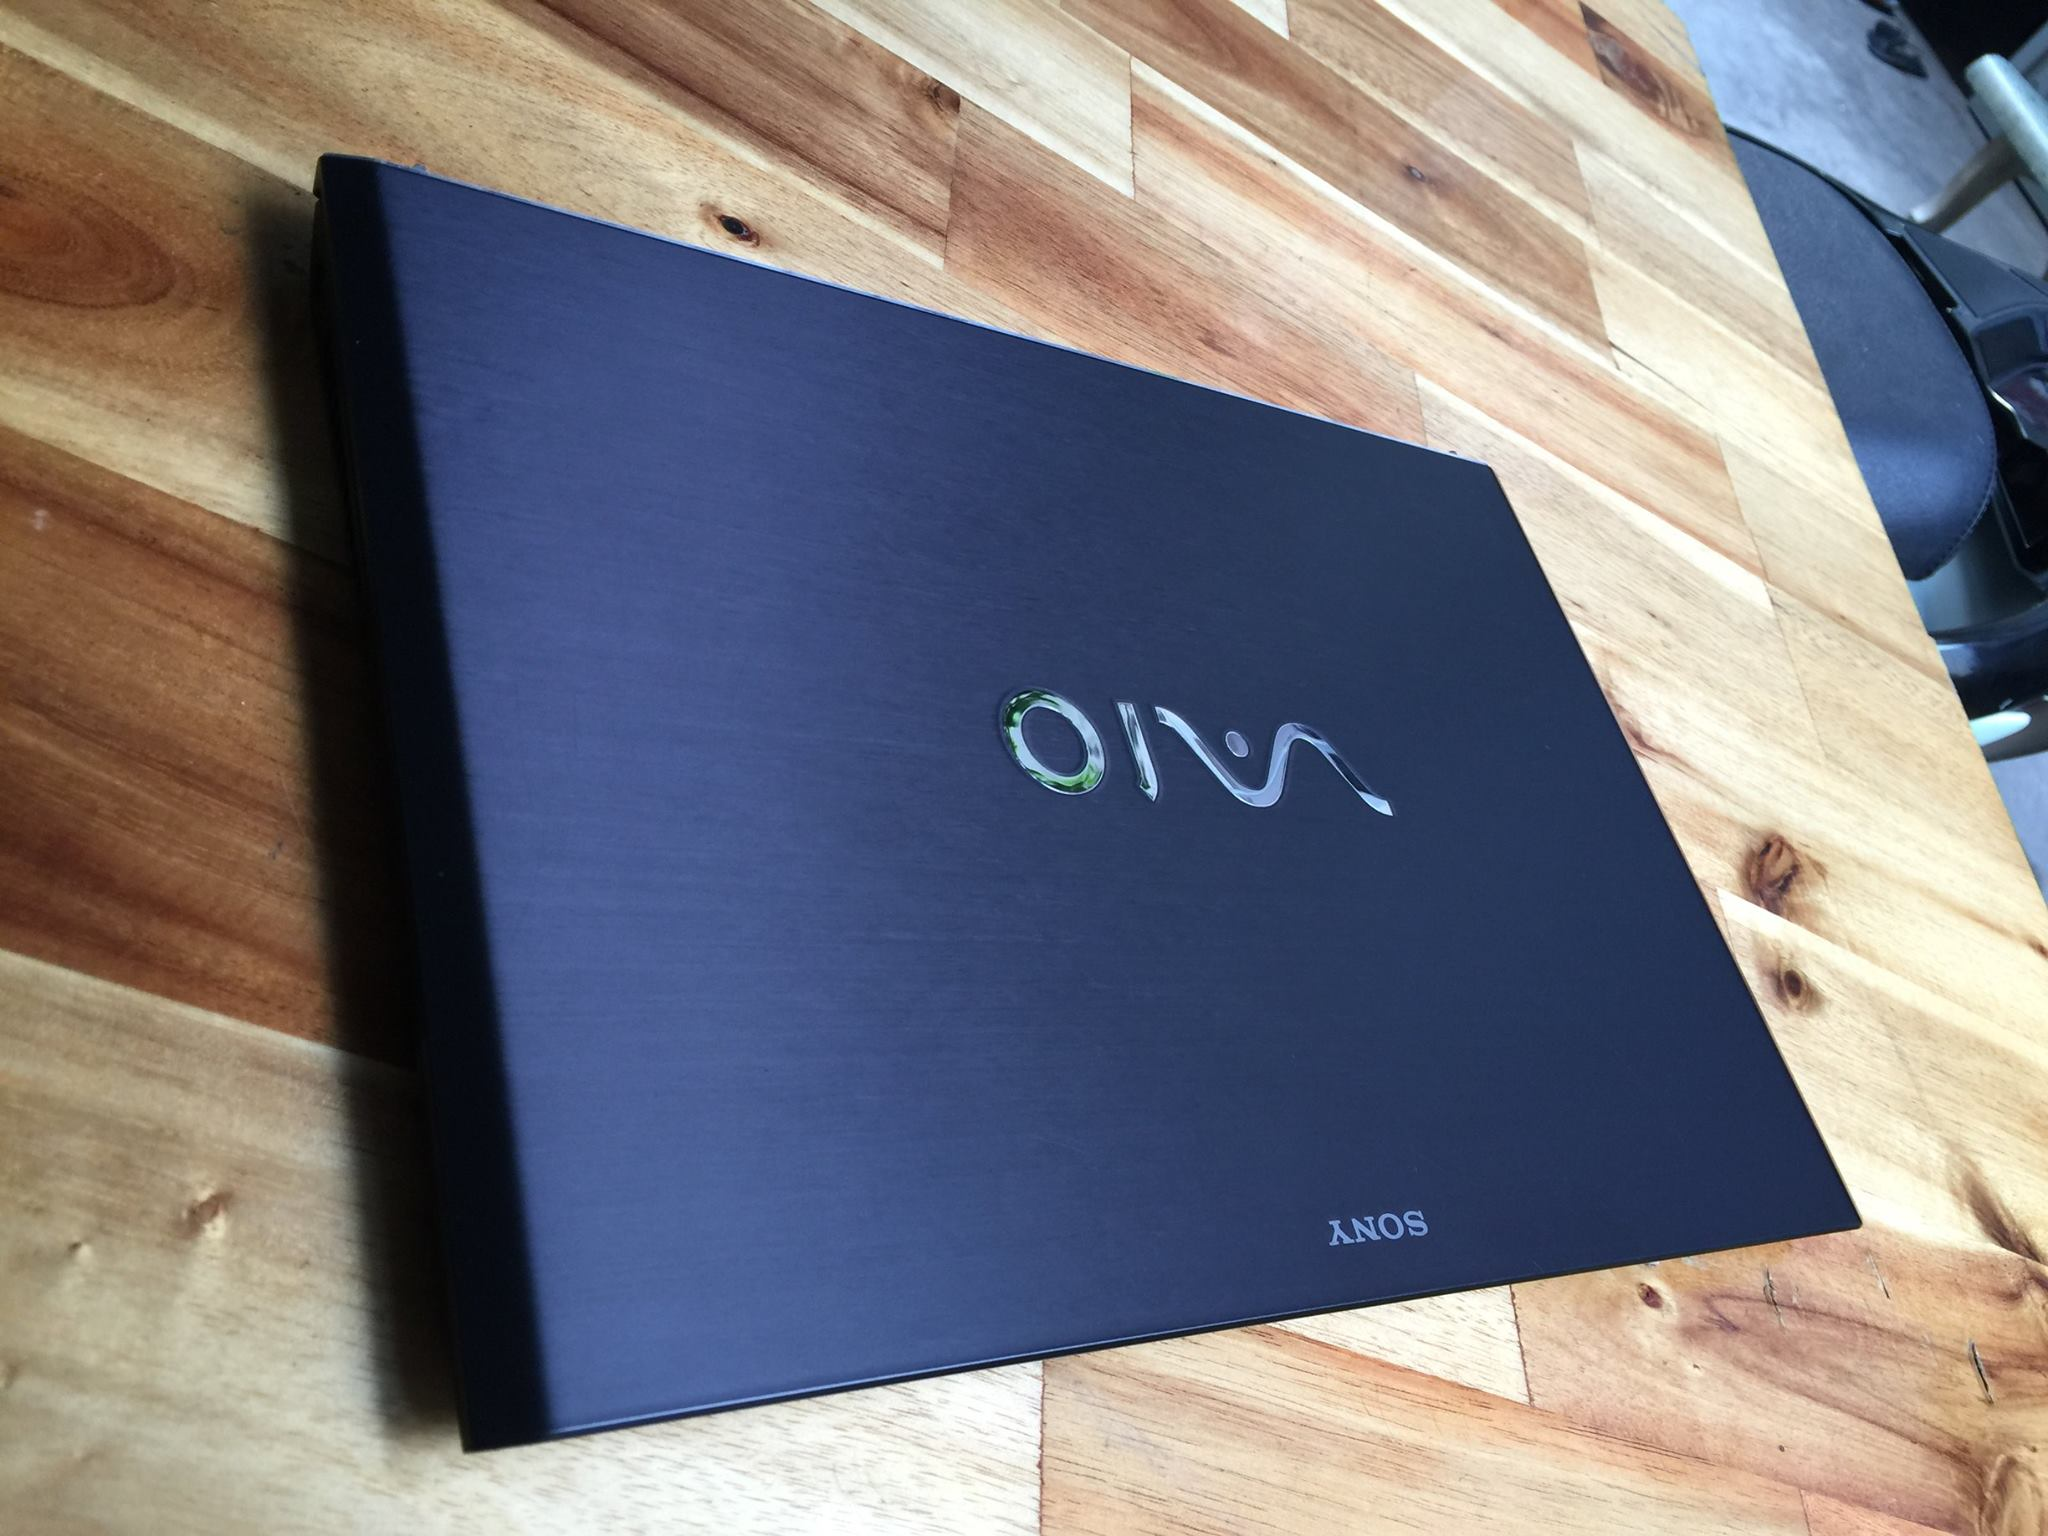 Laptop ultralbook sonyvaio SVP13. i5 4200, 4G6